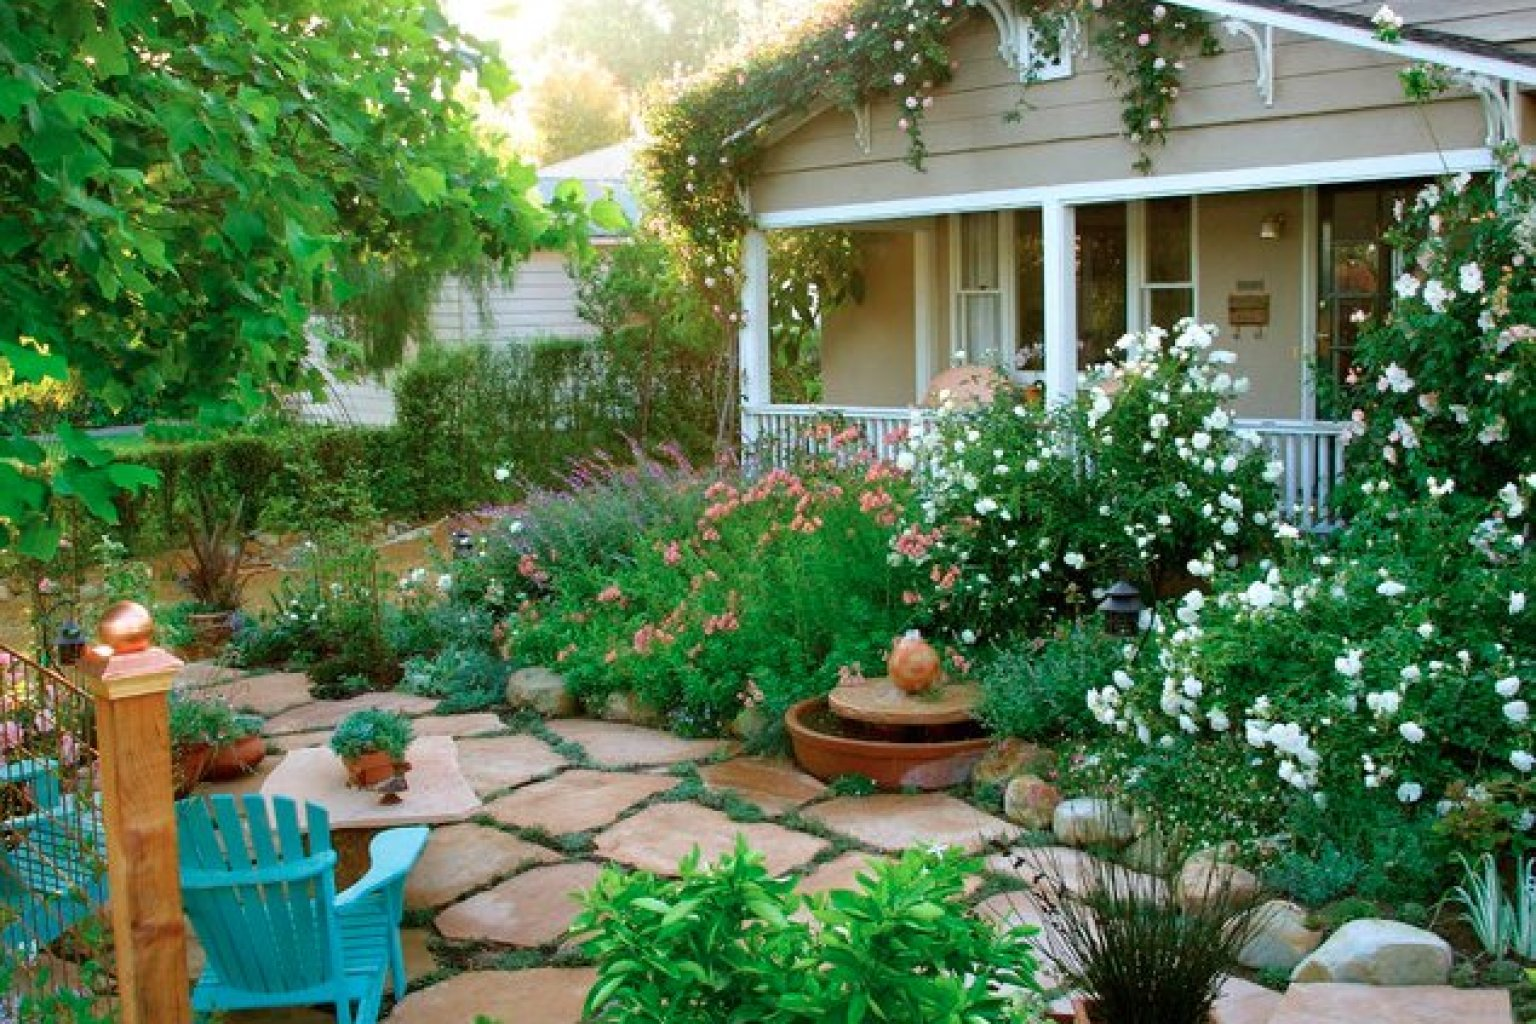 10 cottage gardens that are just too charming for words photos huffpost